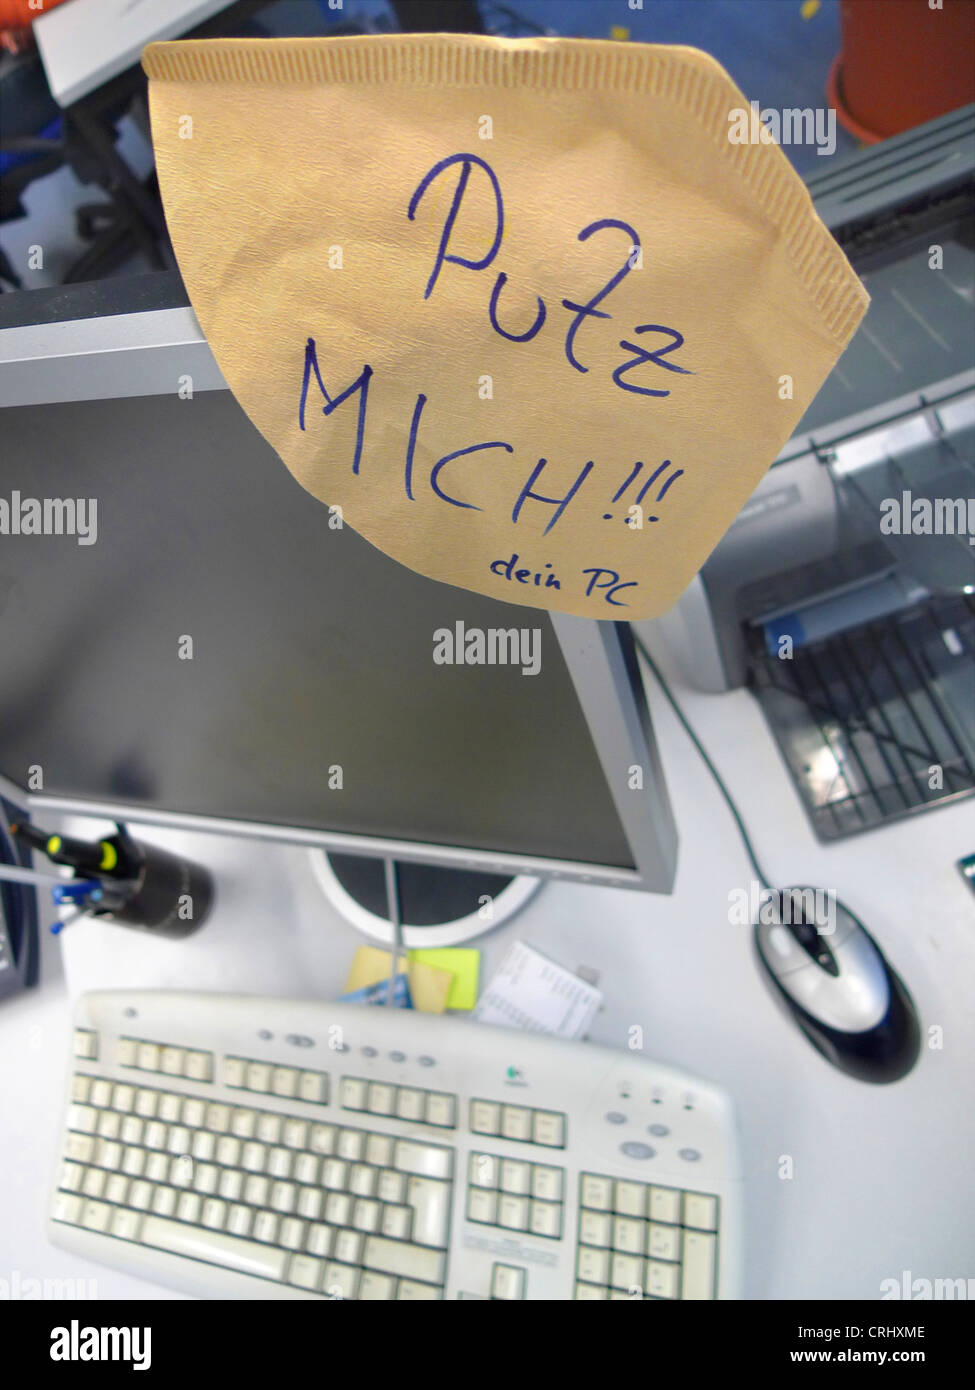 joke by a an office colleague, demand for cleaning the PC, tidy me up! - Stock Image